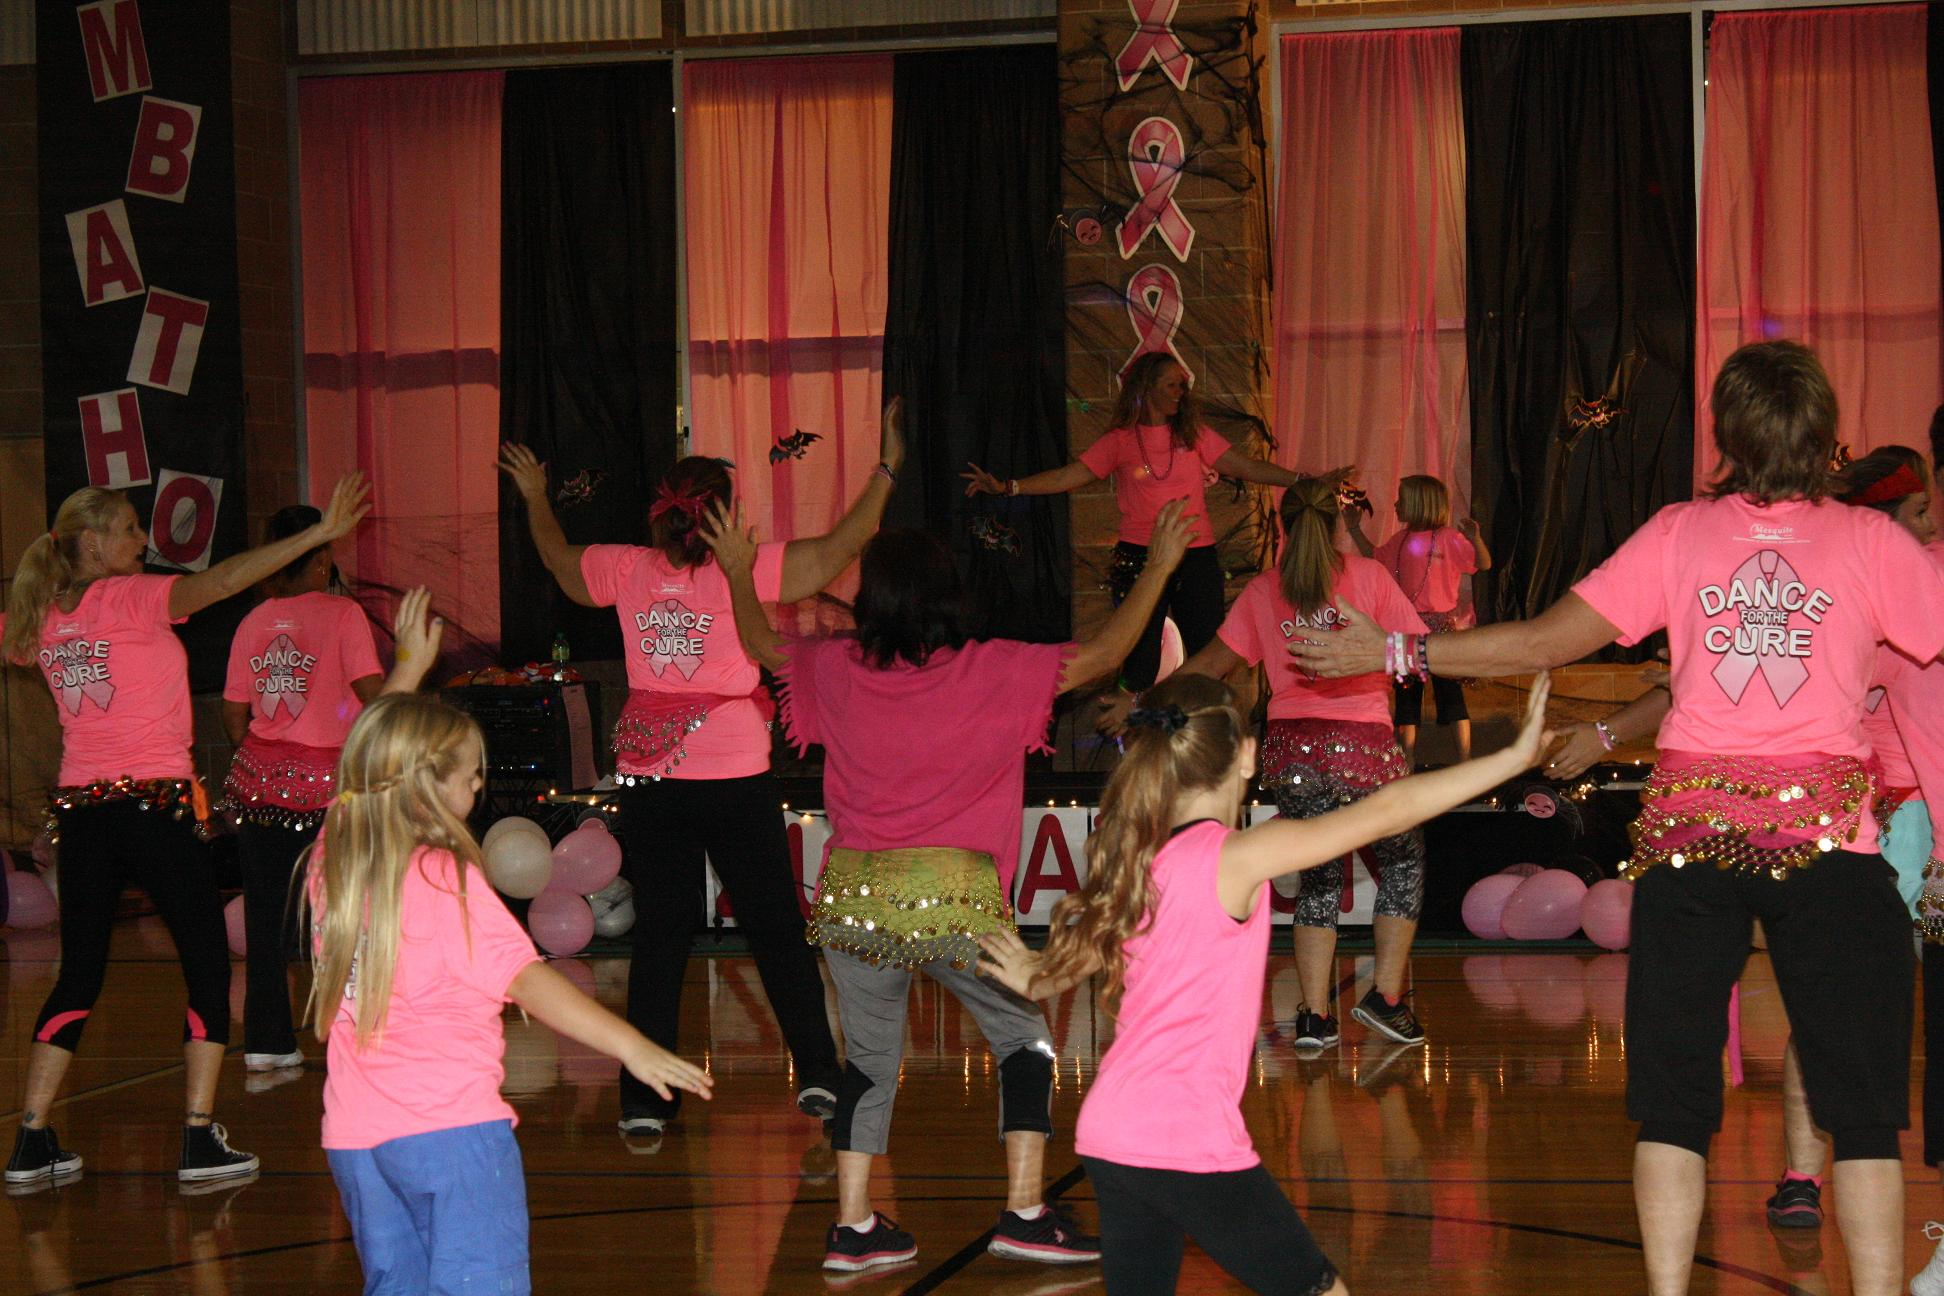 'Zumbathon' beat rocks recreation center Gym